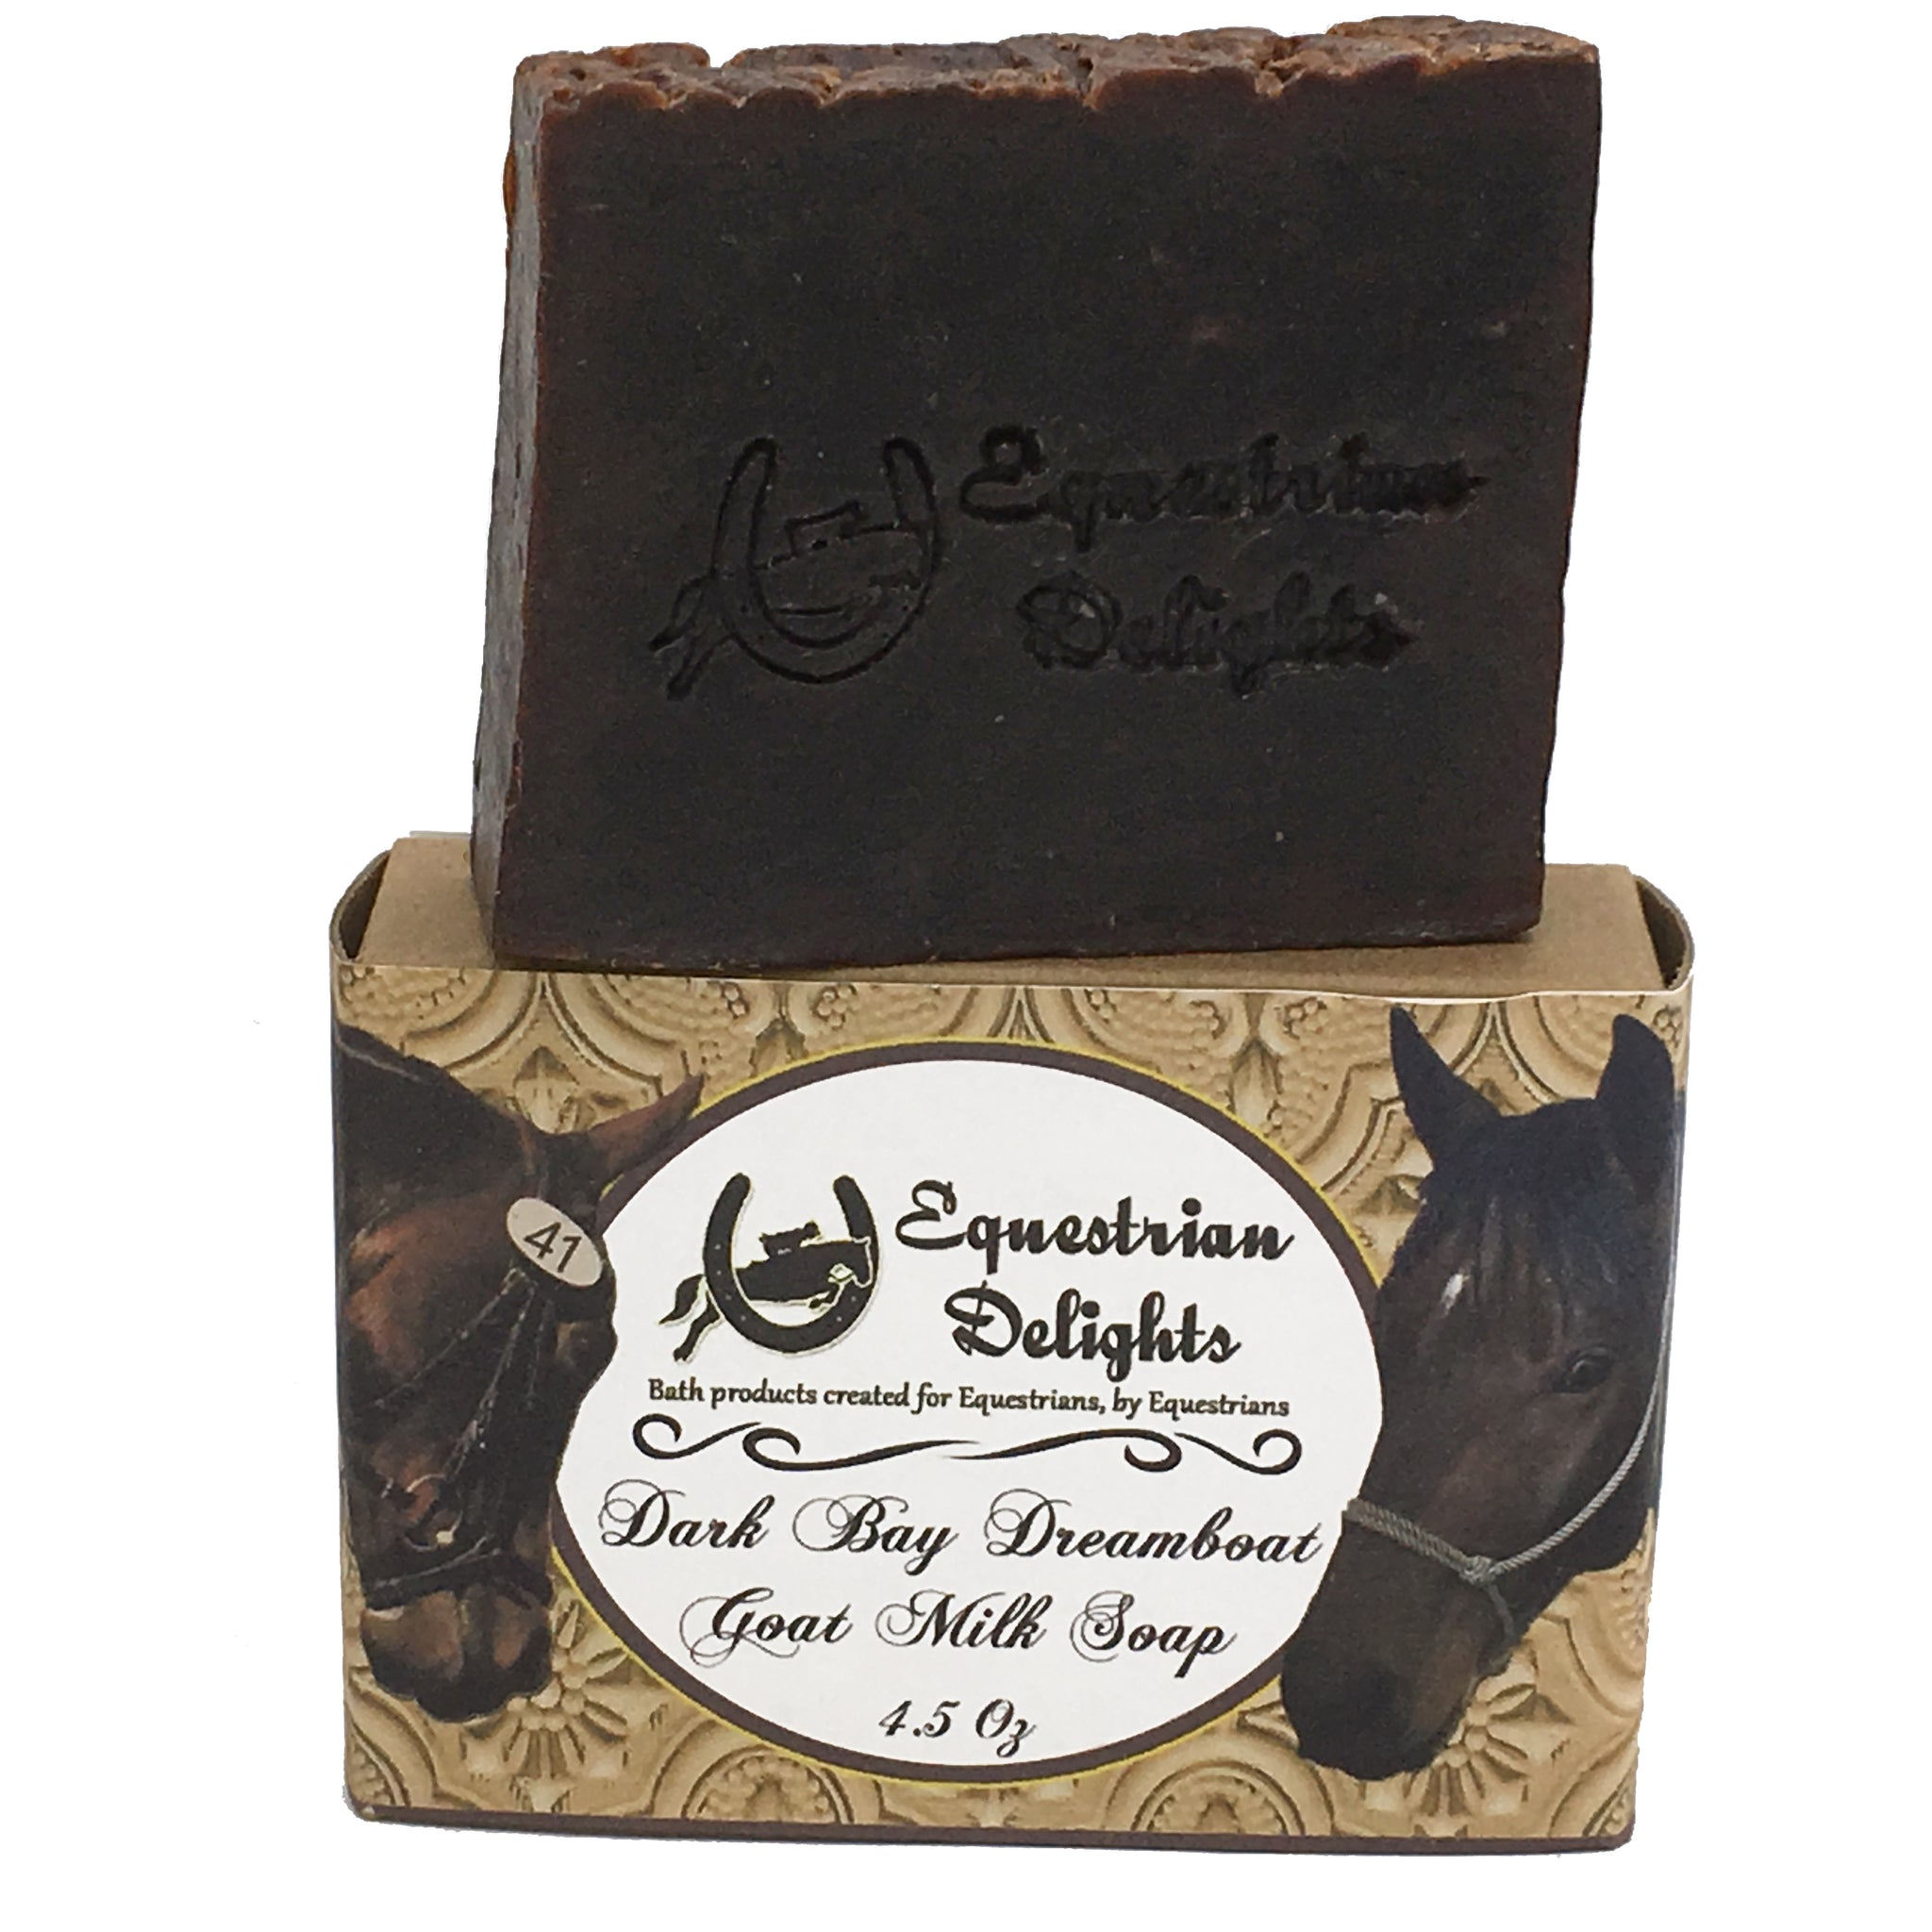 Dark Bay Delight Vanilla Goat Milk Handmade Soap